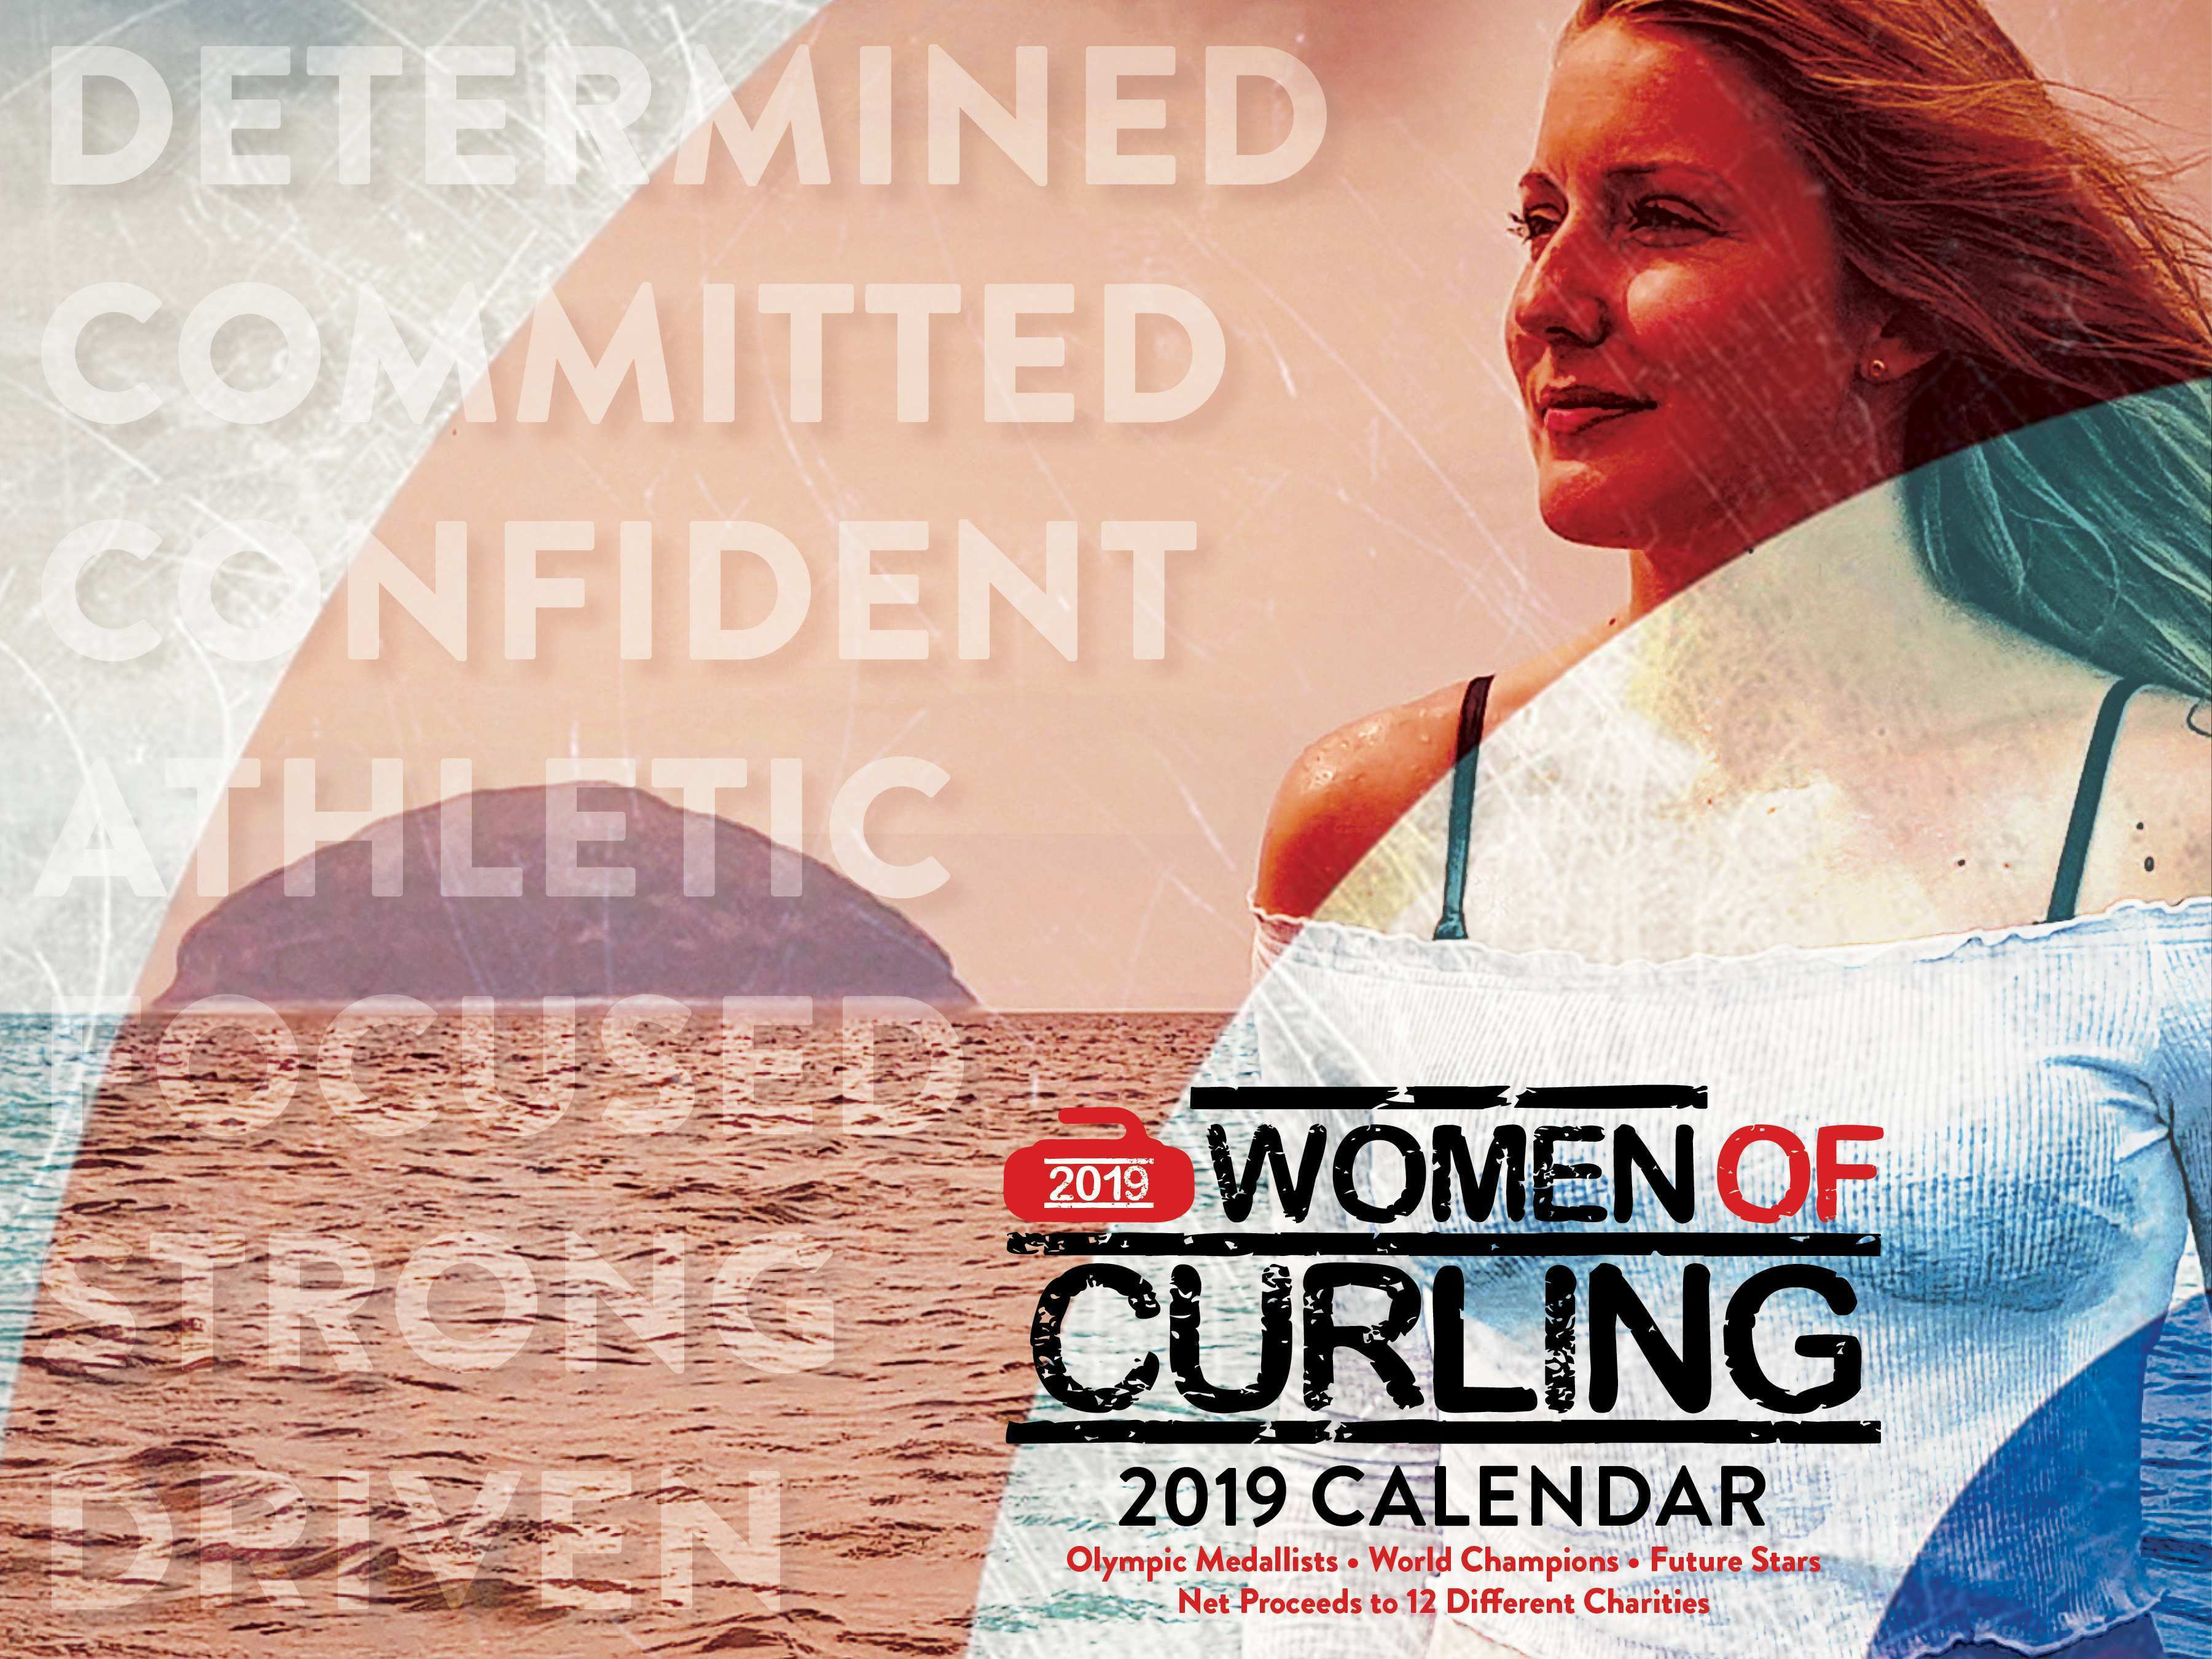 67 Gallery of 2019 Ford World Womens Curling Championship Price and Review with 2019 Ford World Womens Curling Championship